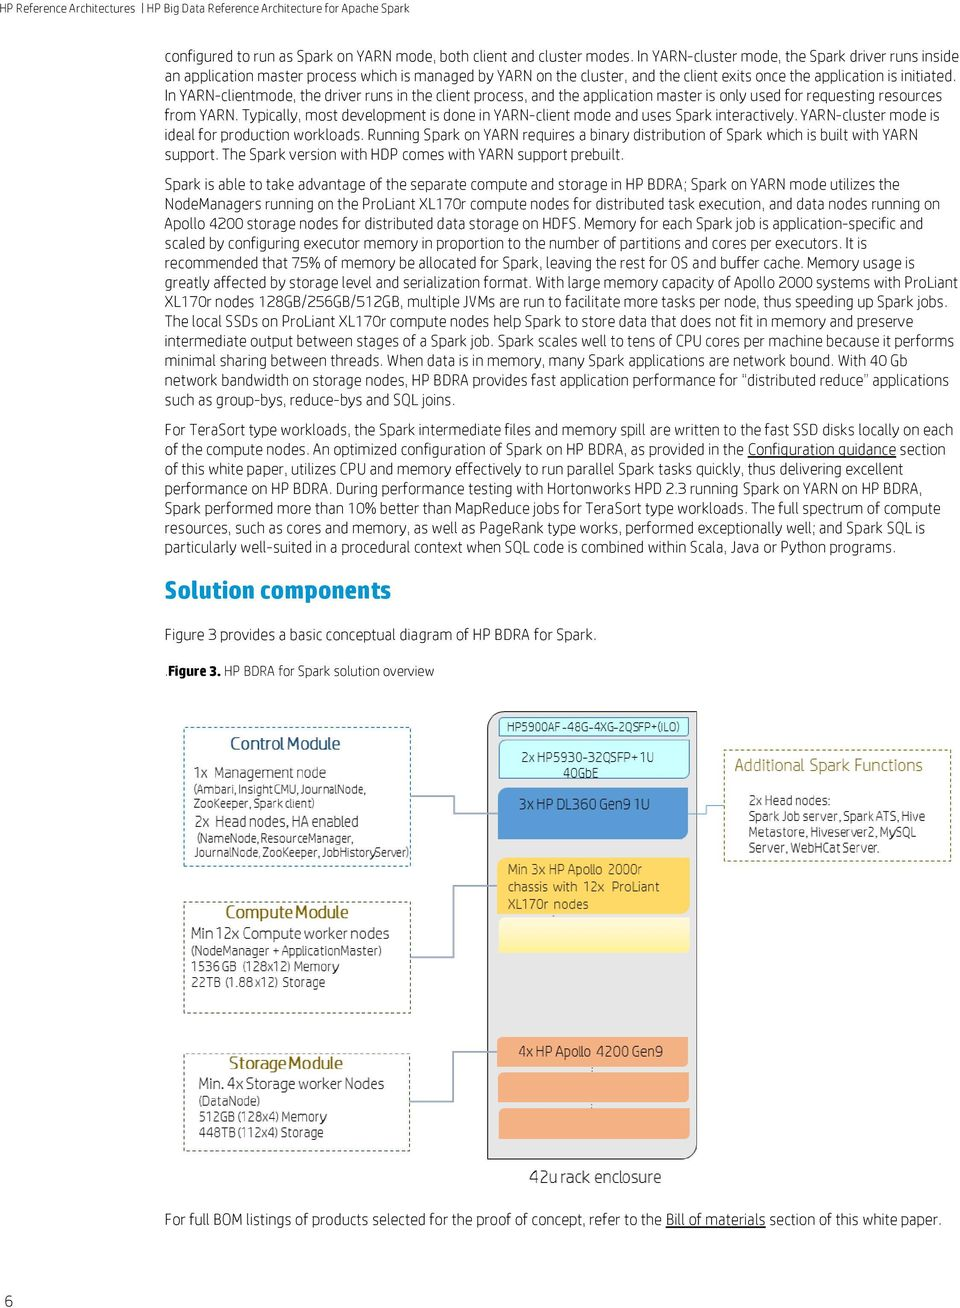 HP Big Data Reference Architecture for Apache Spark - PDF